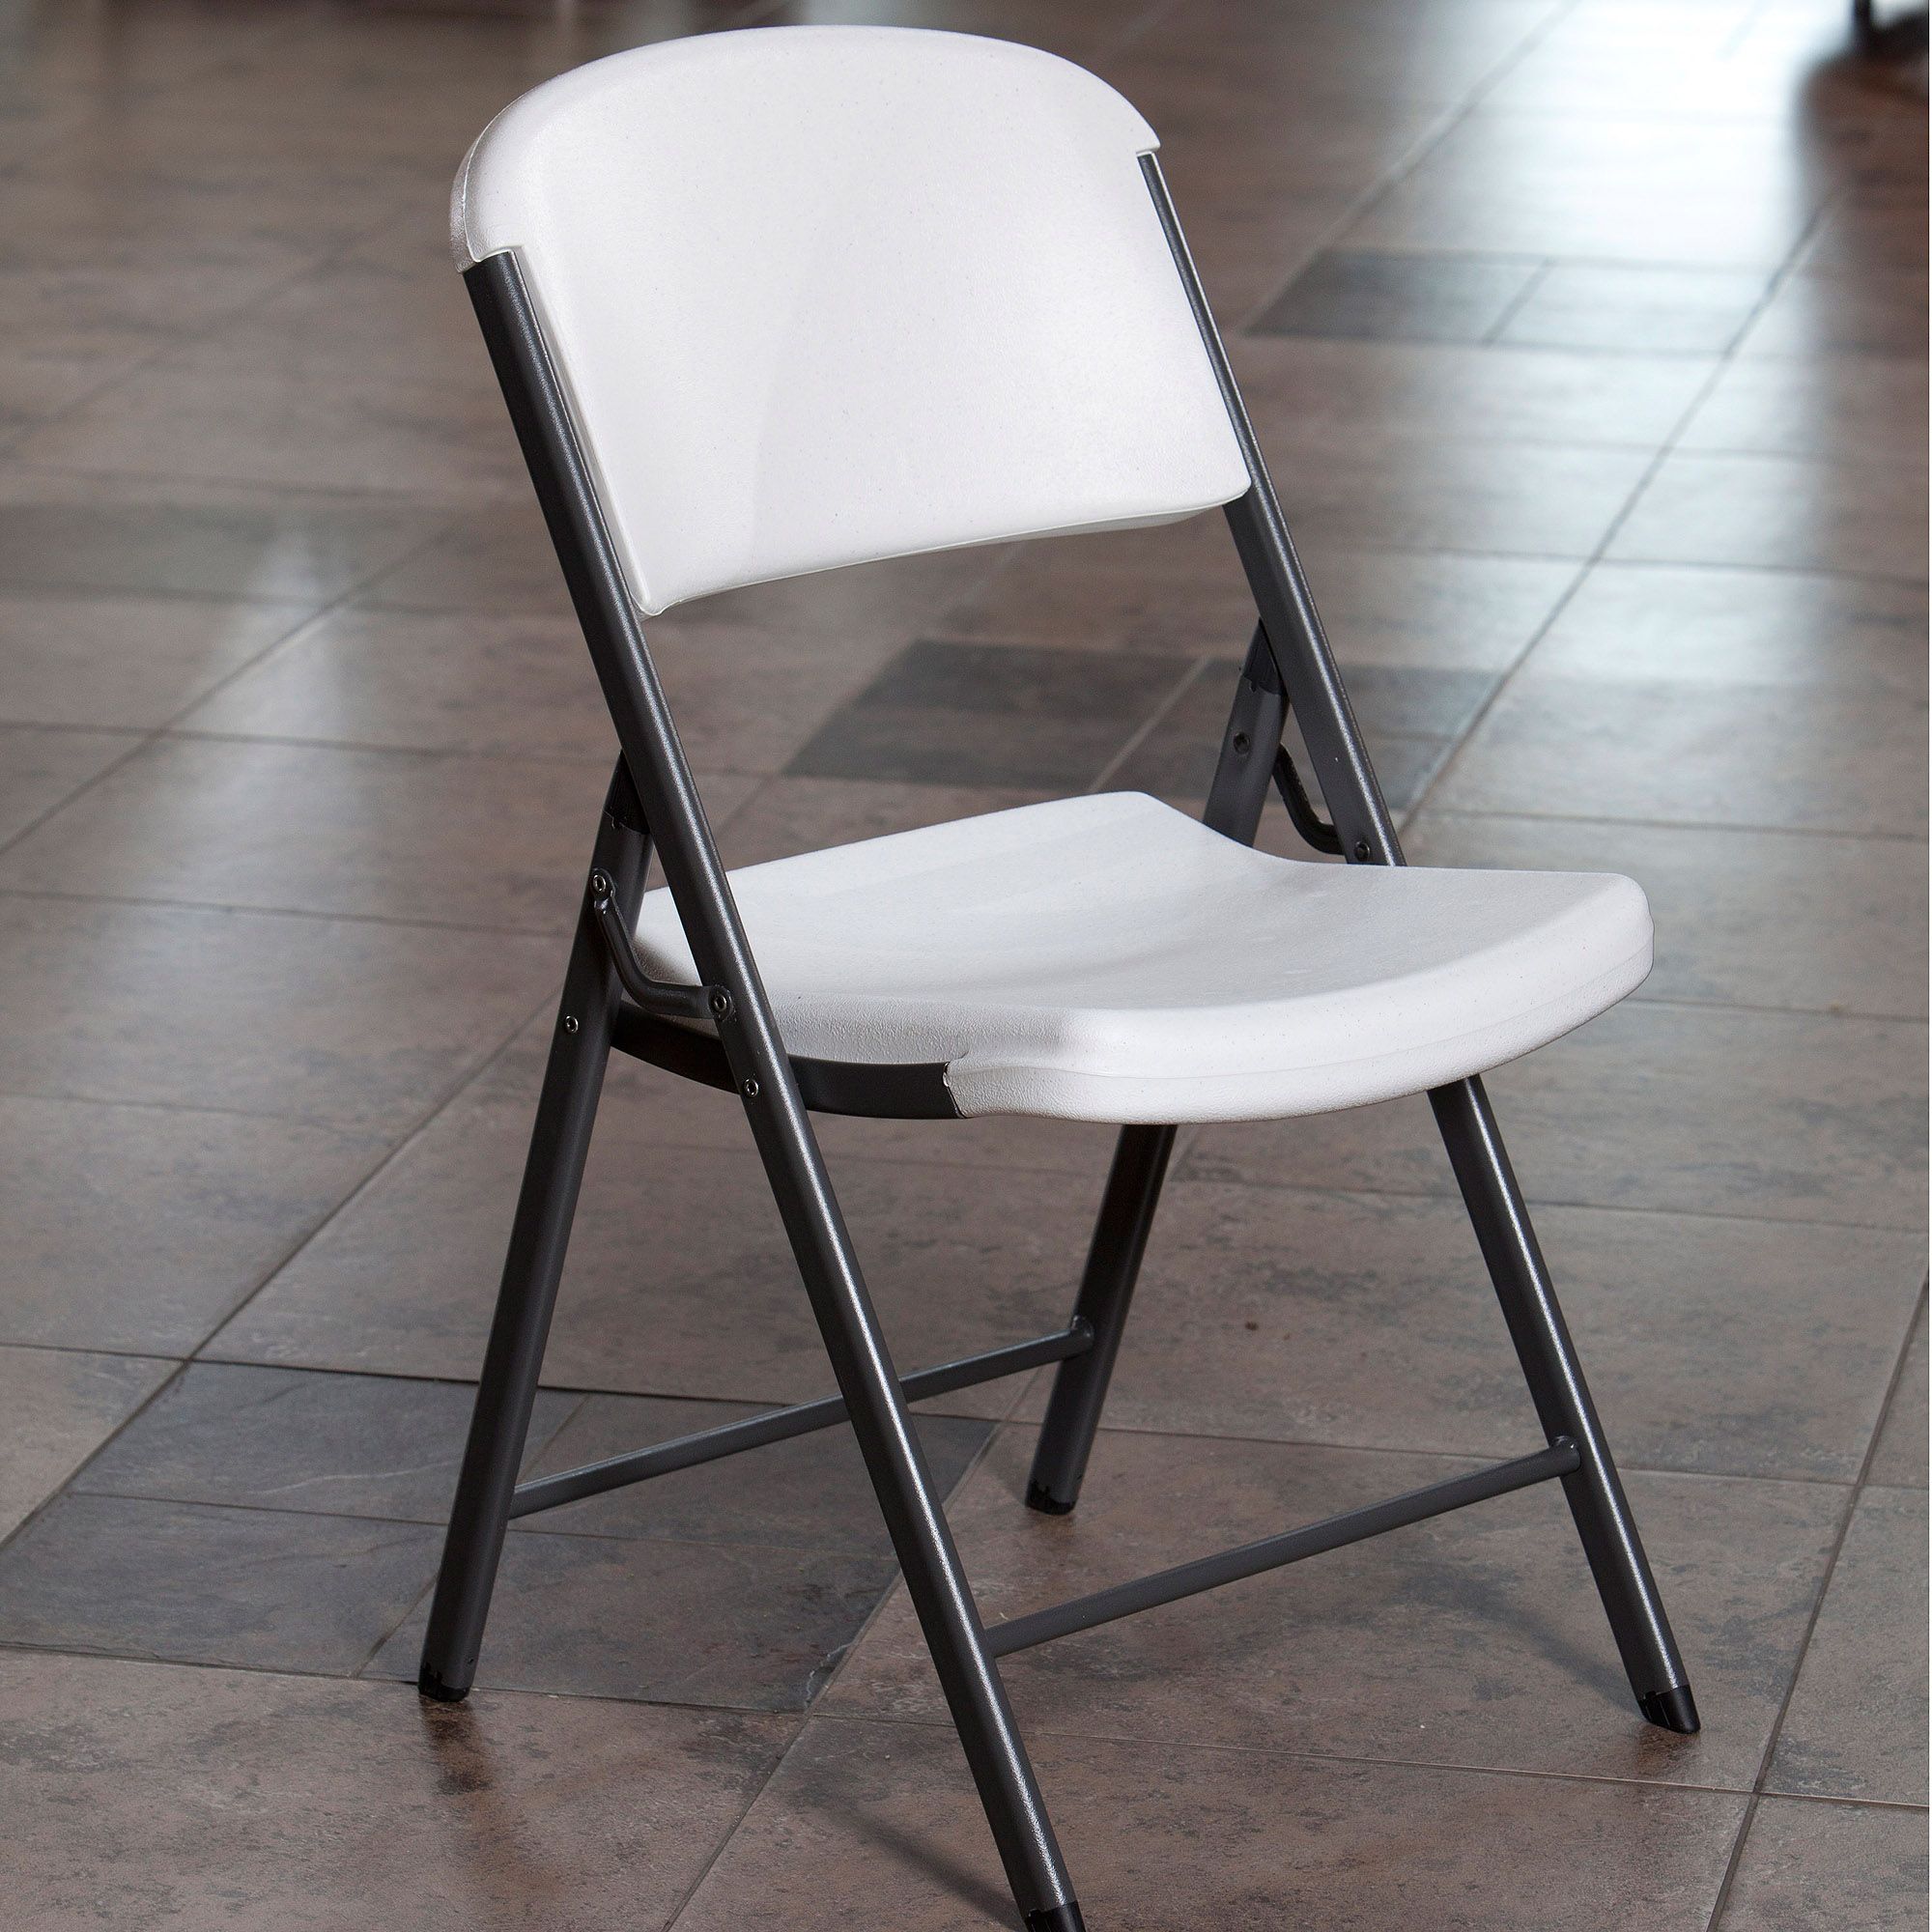 Lifetime Classic Commercial Folding Chair Set Of 4